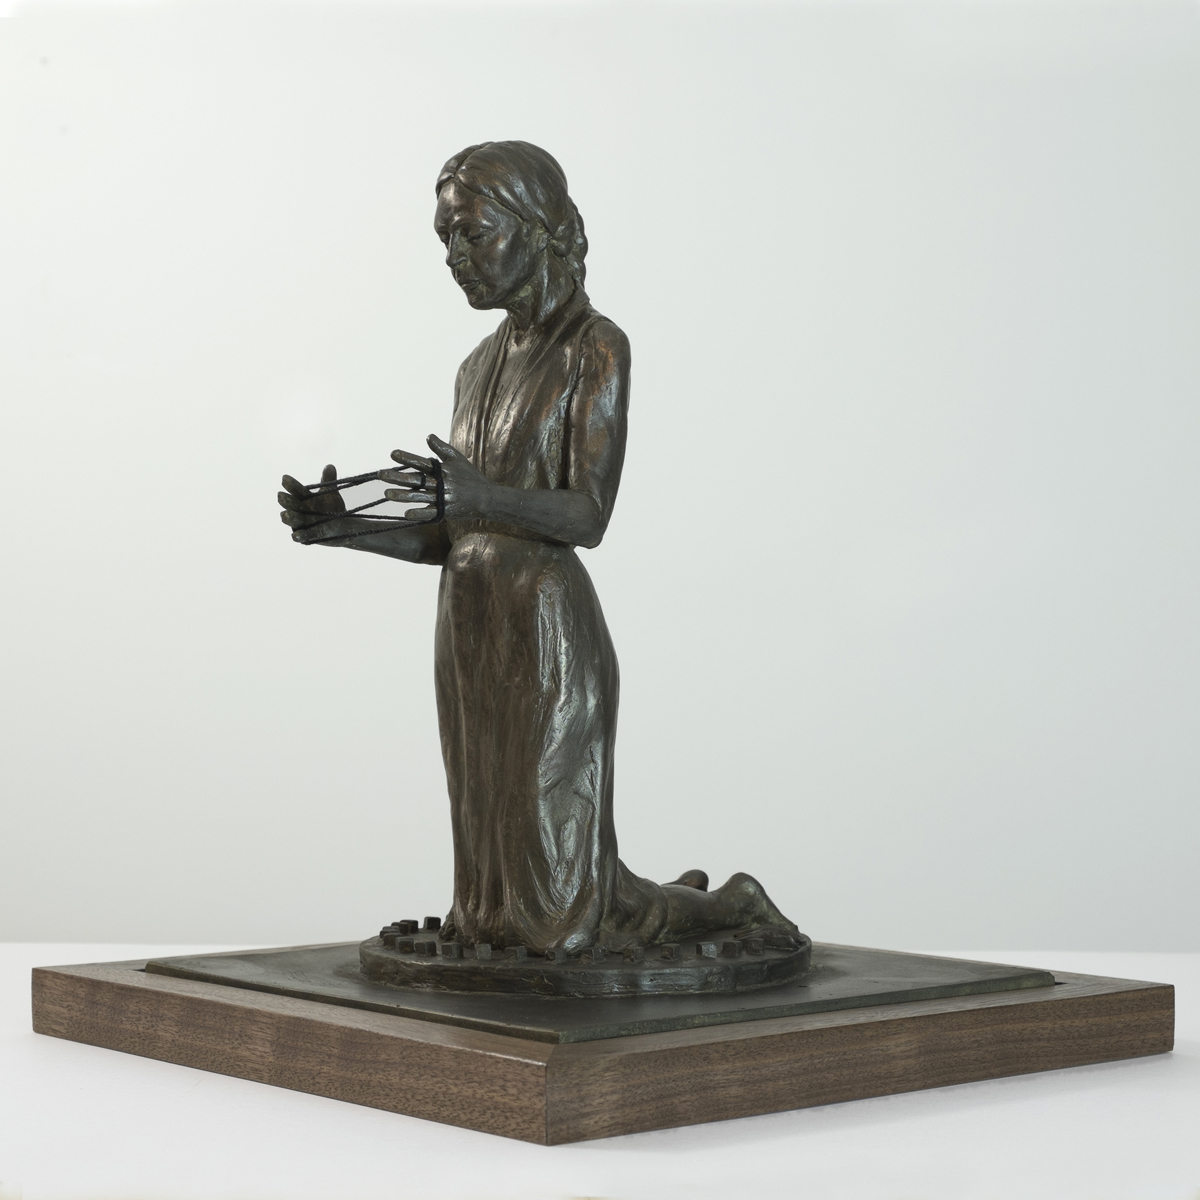 Maquette for a Sandy Hook Memorial (large view)